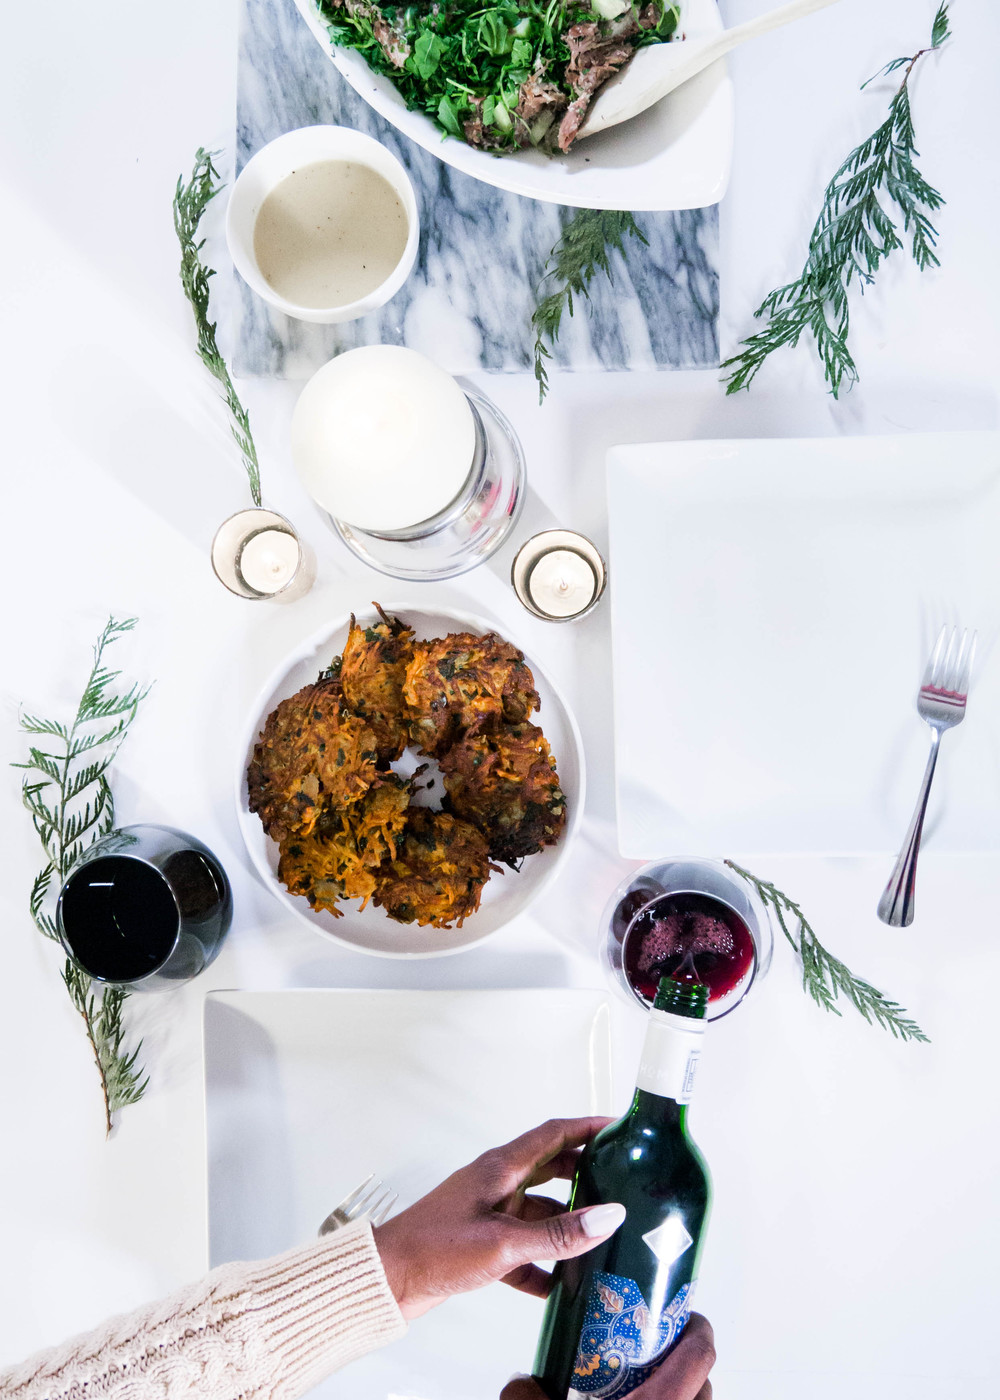 The_Glossier_Fashion_Style_Blogger_DC_HOUSE_OF_MANDELA_WINE_CHEF_PIERRE_THIAM_SENEGAL-10.jpg